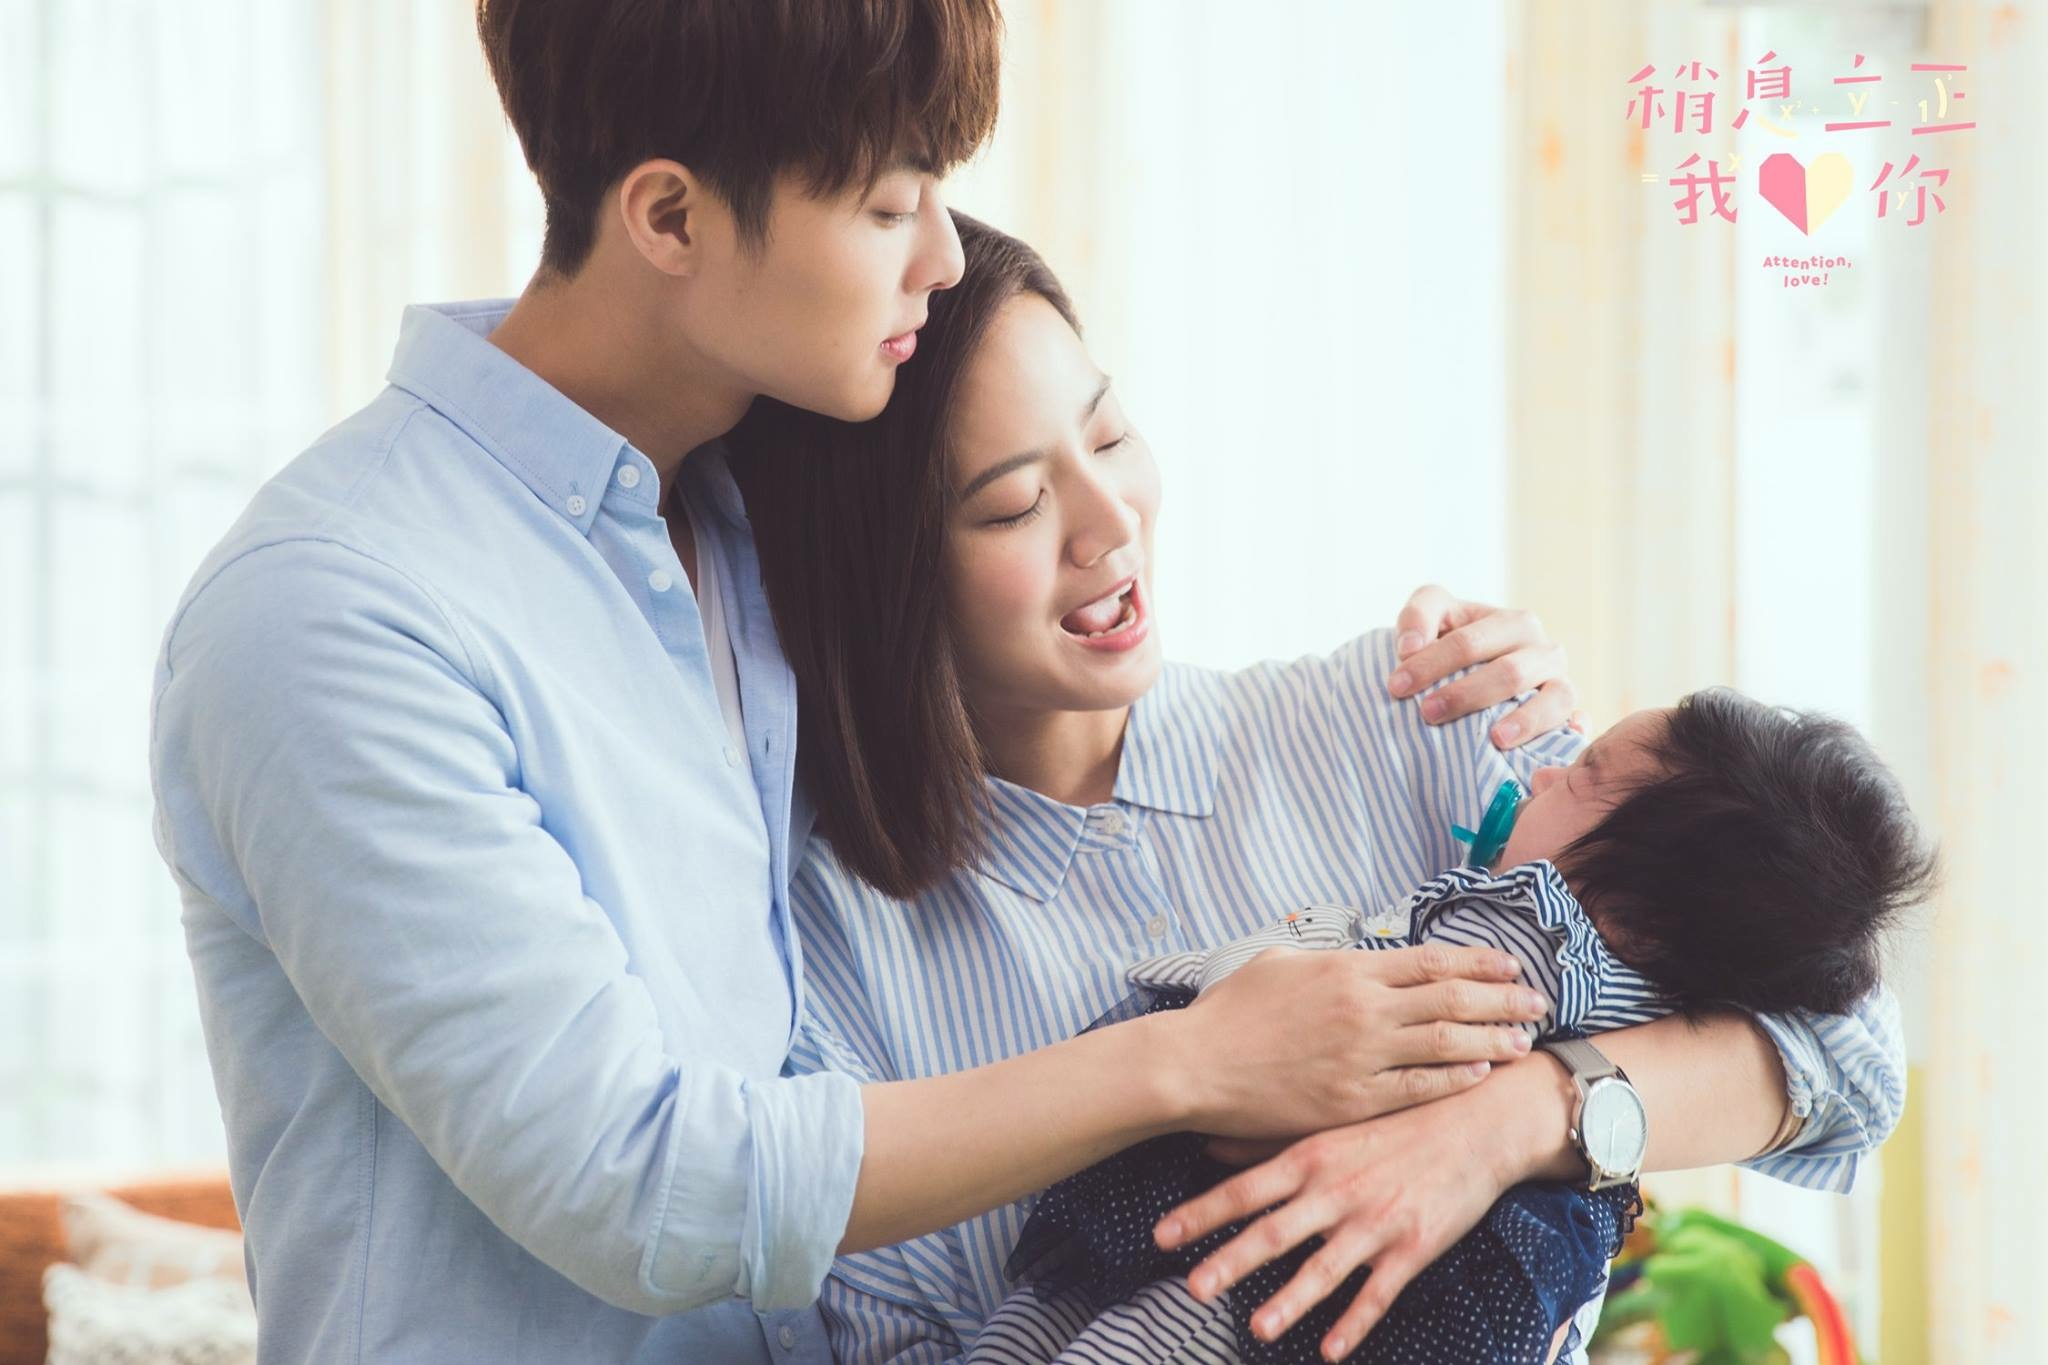 Joanne Tseng and Prince Chiu in Attention, Love! (2017)